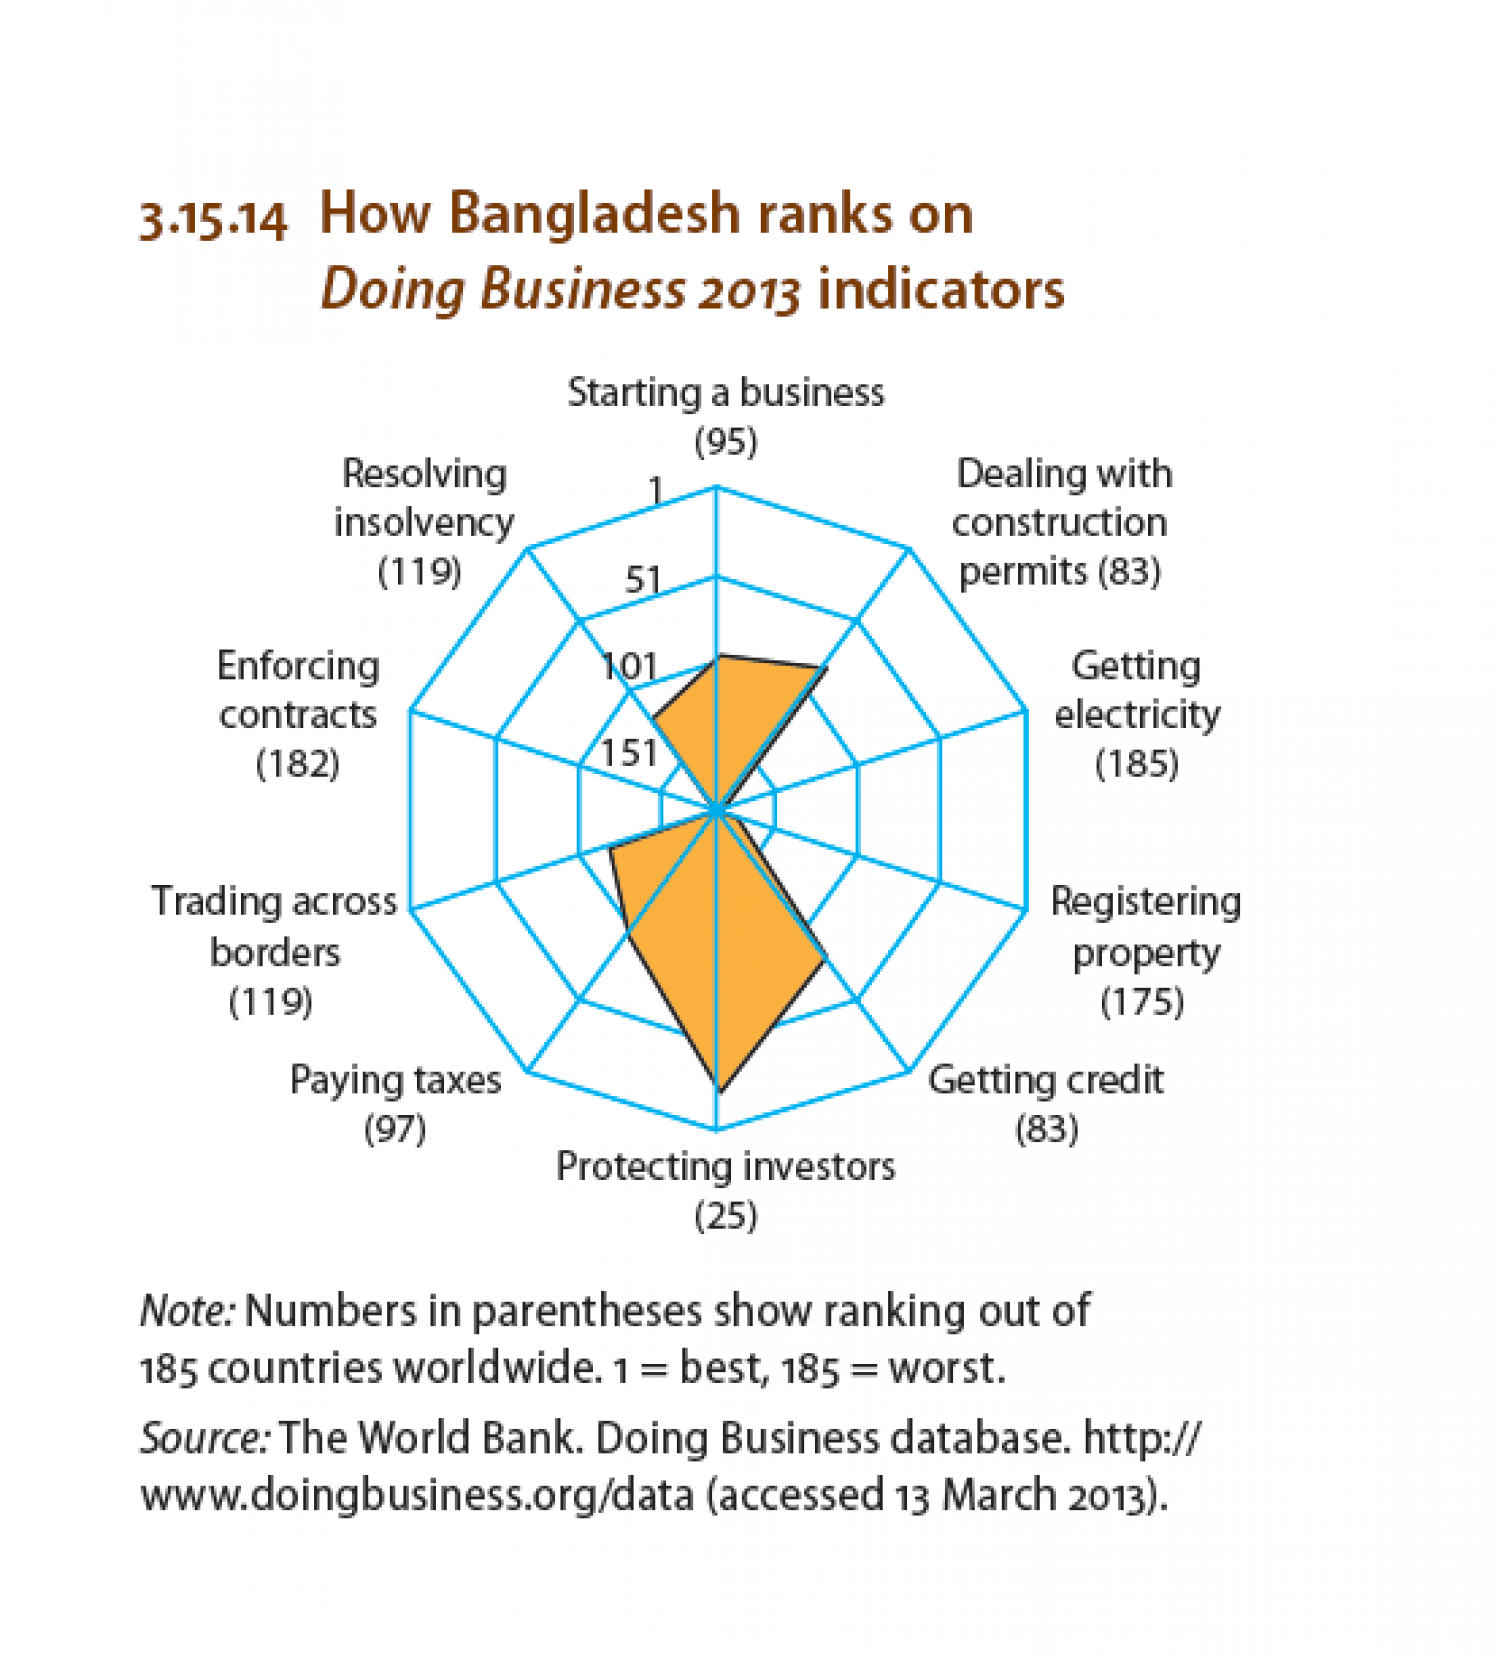 How Bangladesh ranks on Doing Business 2013 indicators Infographic